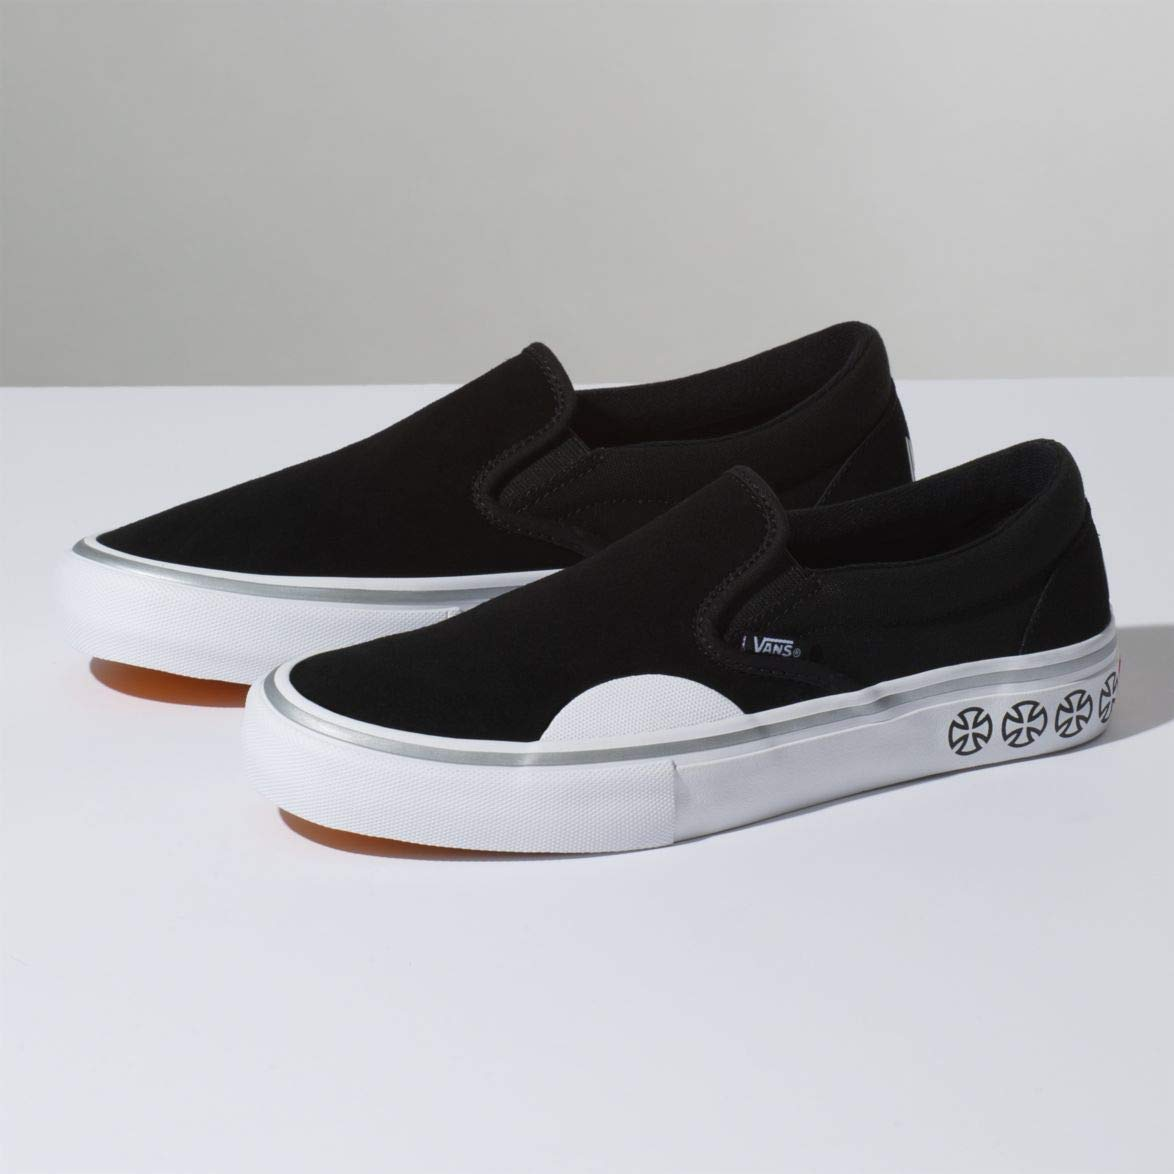 Vans x Independent Slip,On Pro Sneakers (Black/White) Mens Classic Skate  Shoes